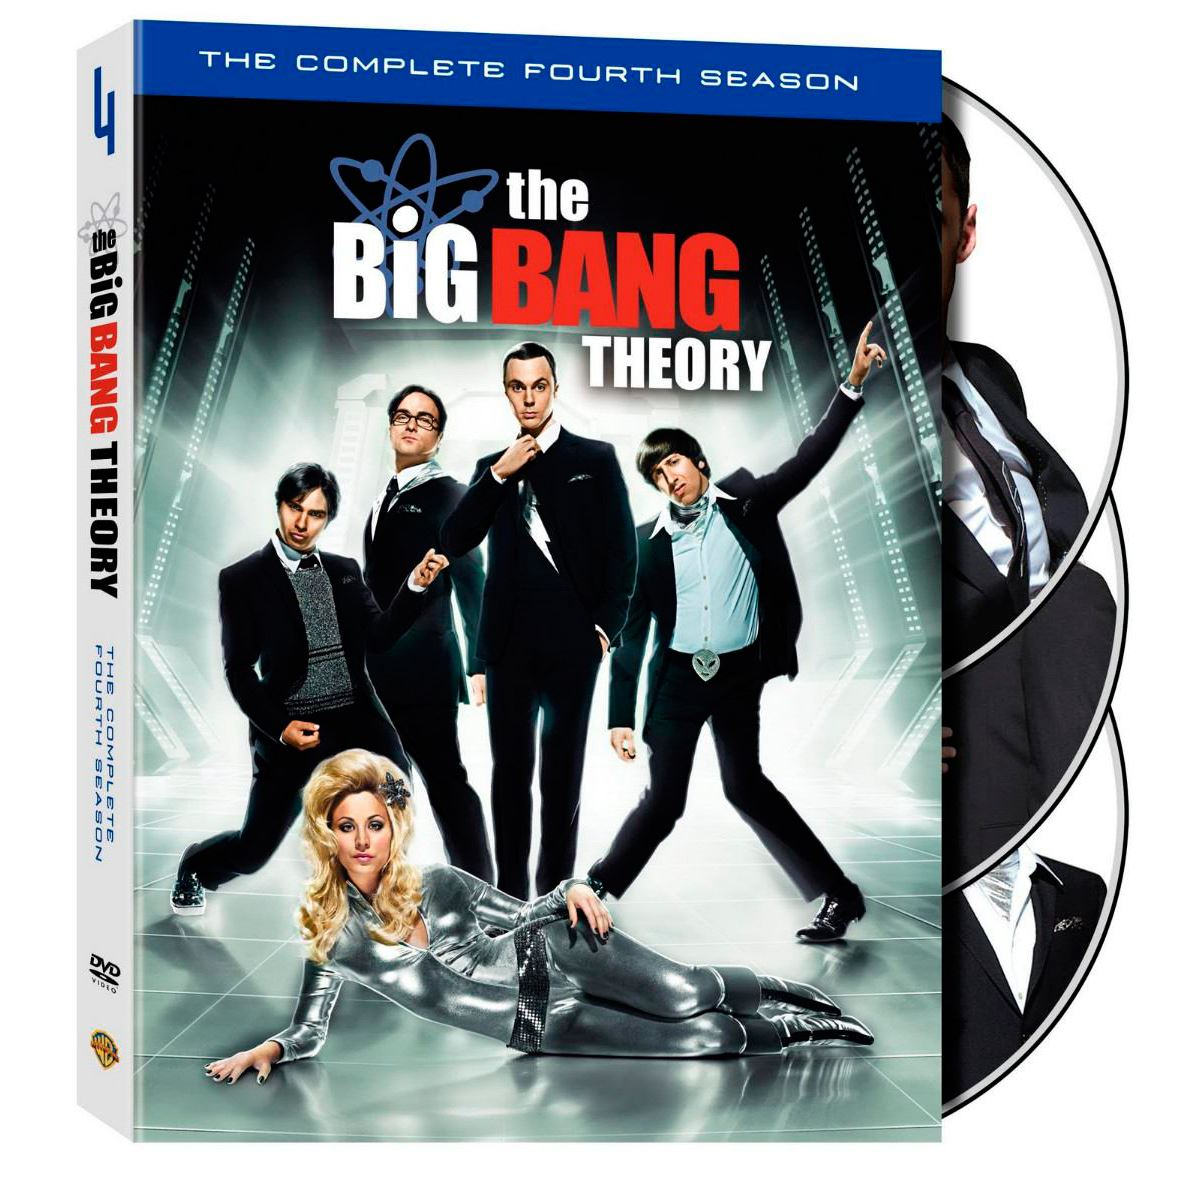 Dvd la teoría del big bang: temporada 4  - Sanborns